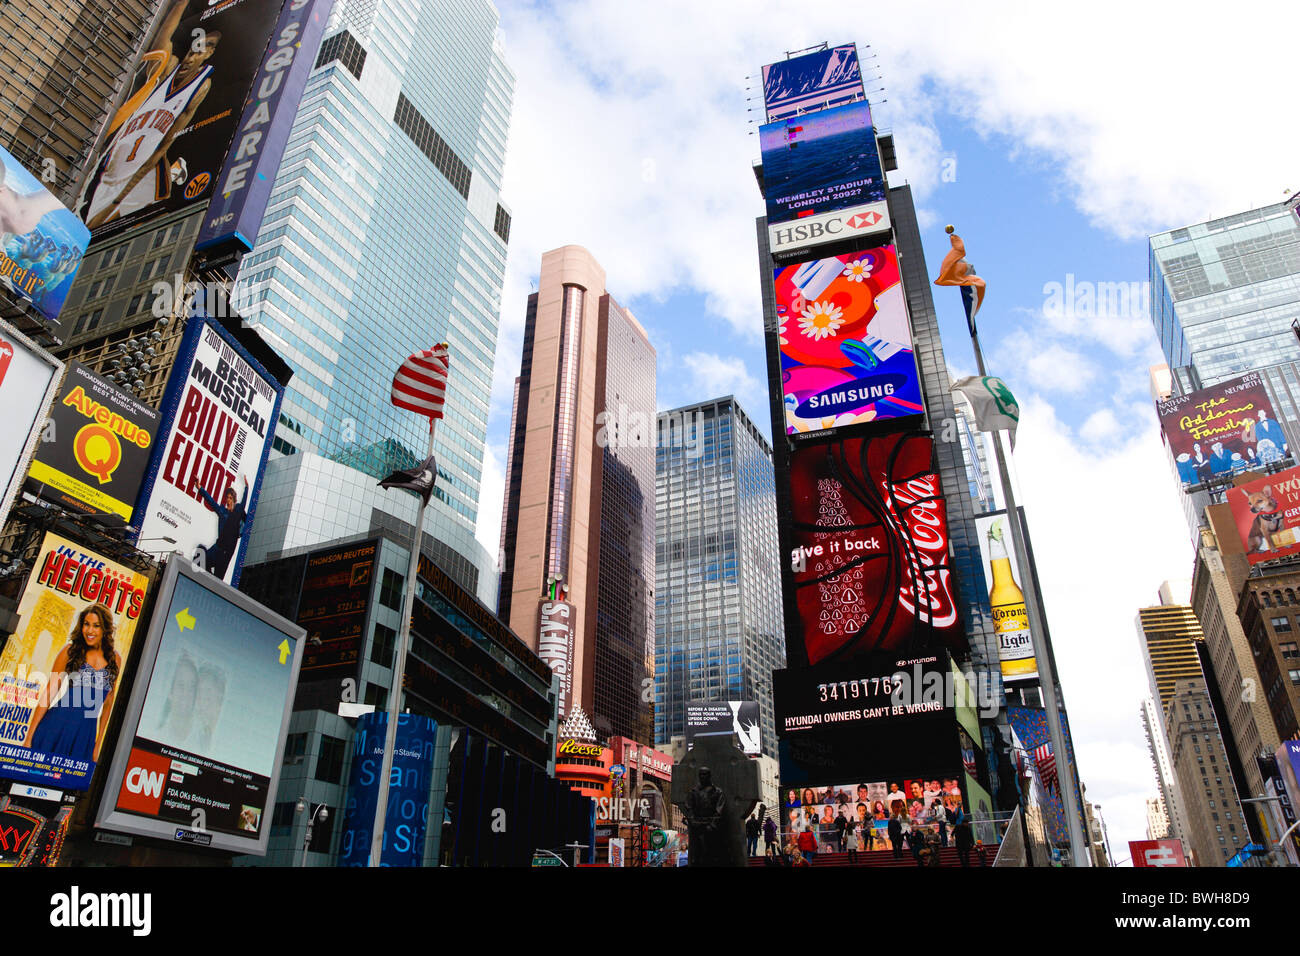 USA New York NYC Manhattan Times Square at the junction of 7th Avenue and Broadway below buildings with advertising - Stock Image